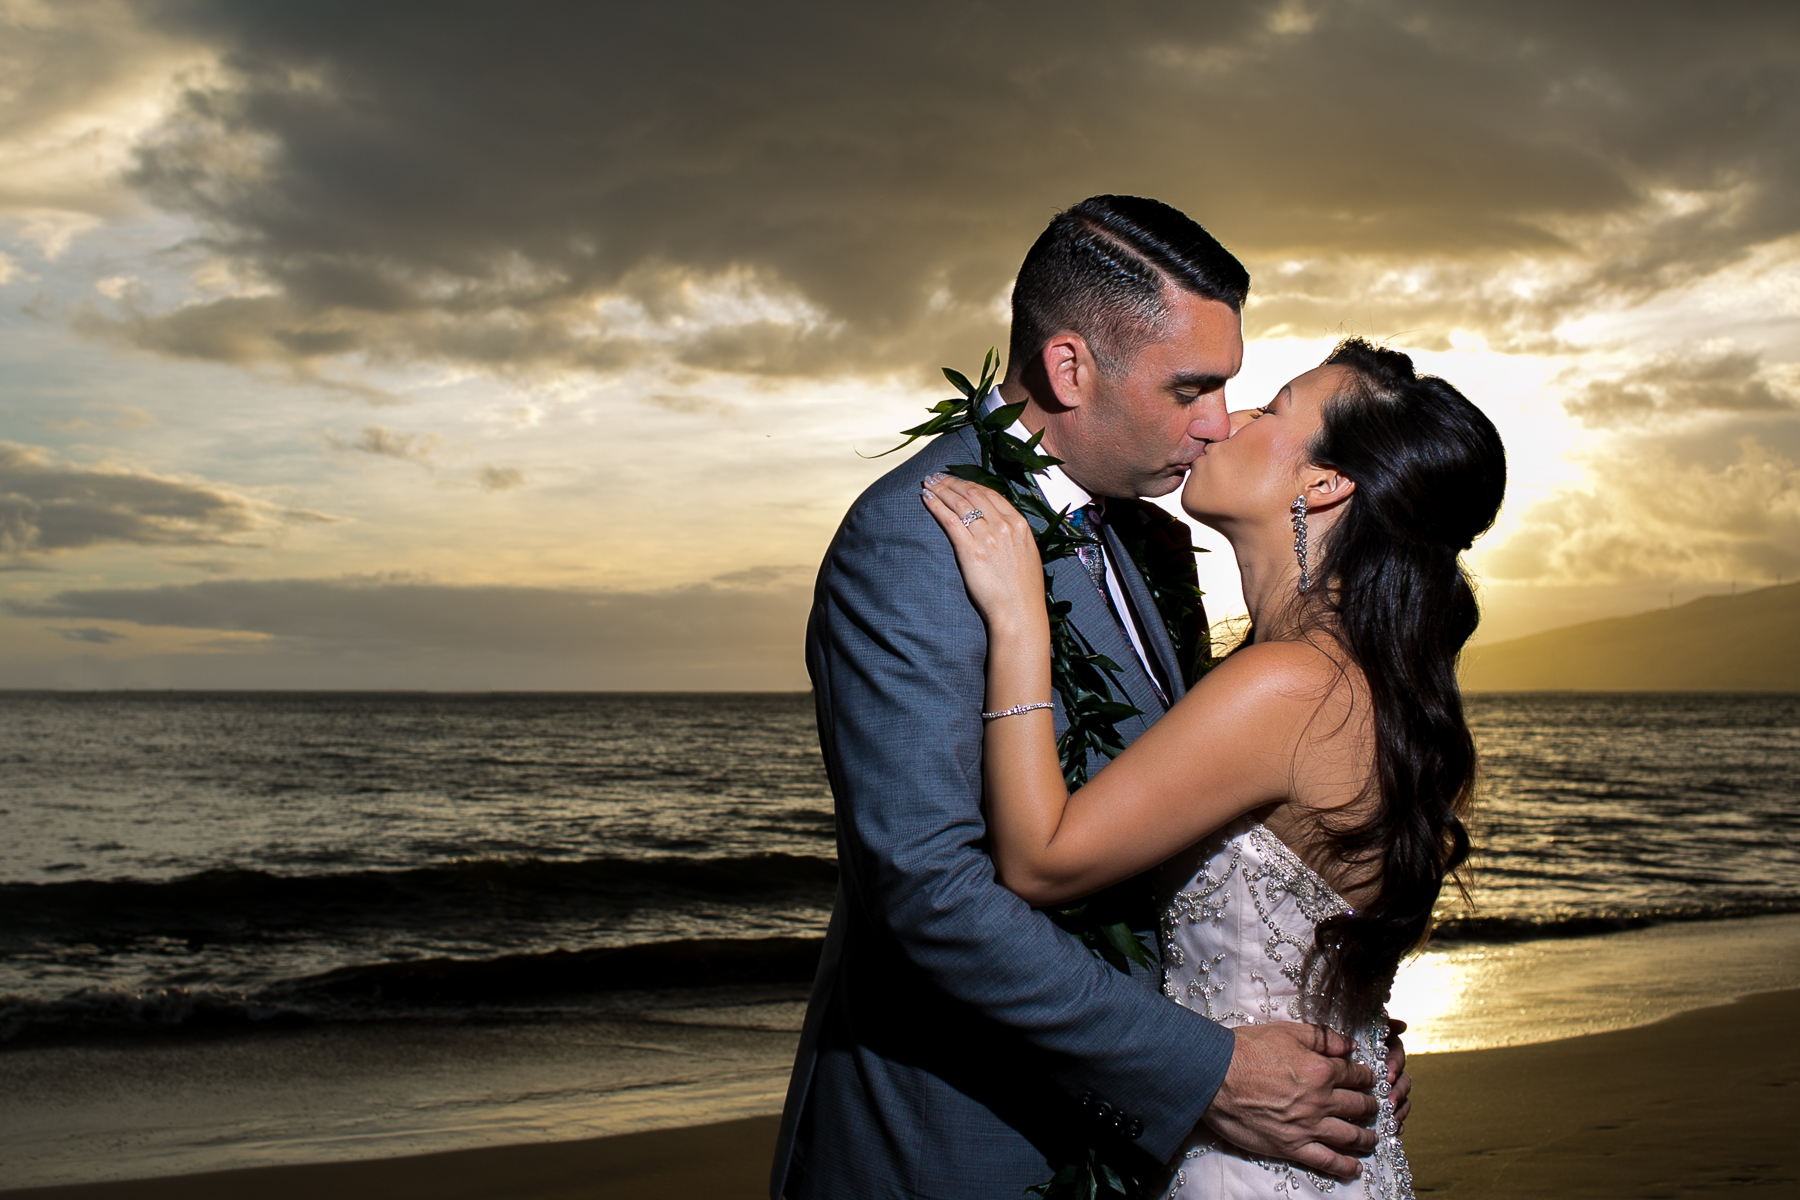 001 - bride groom sunset portraits maui sugar beach events wedding photos